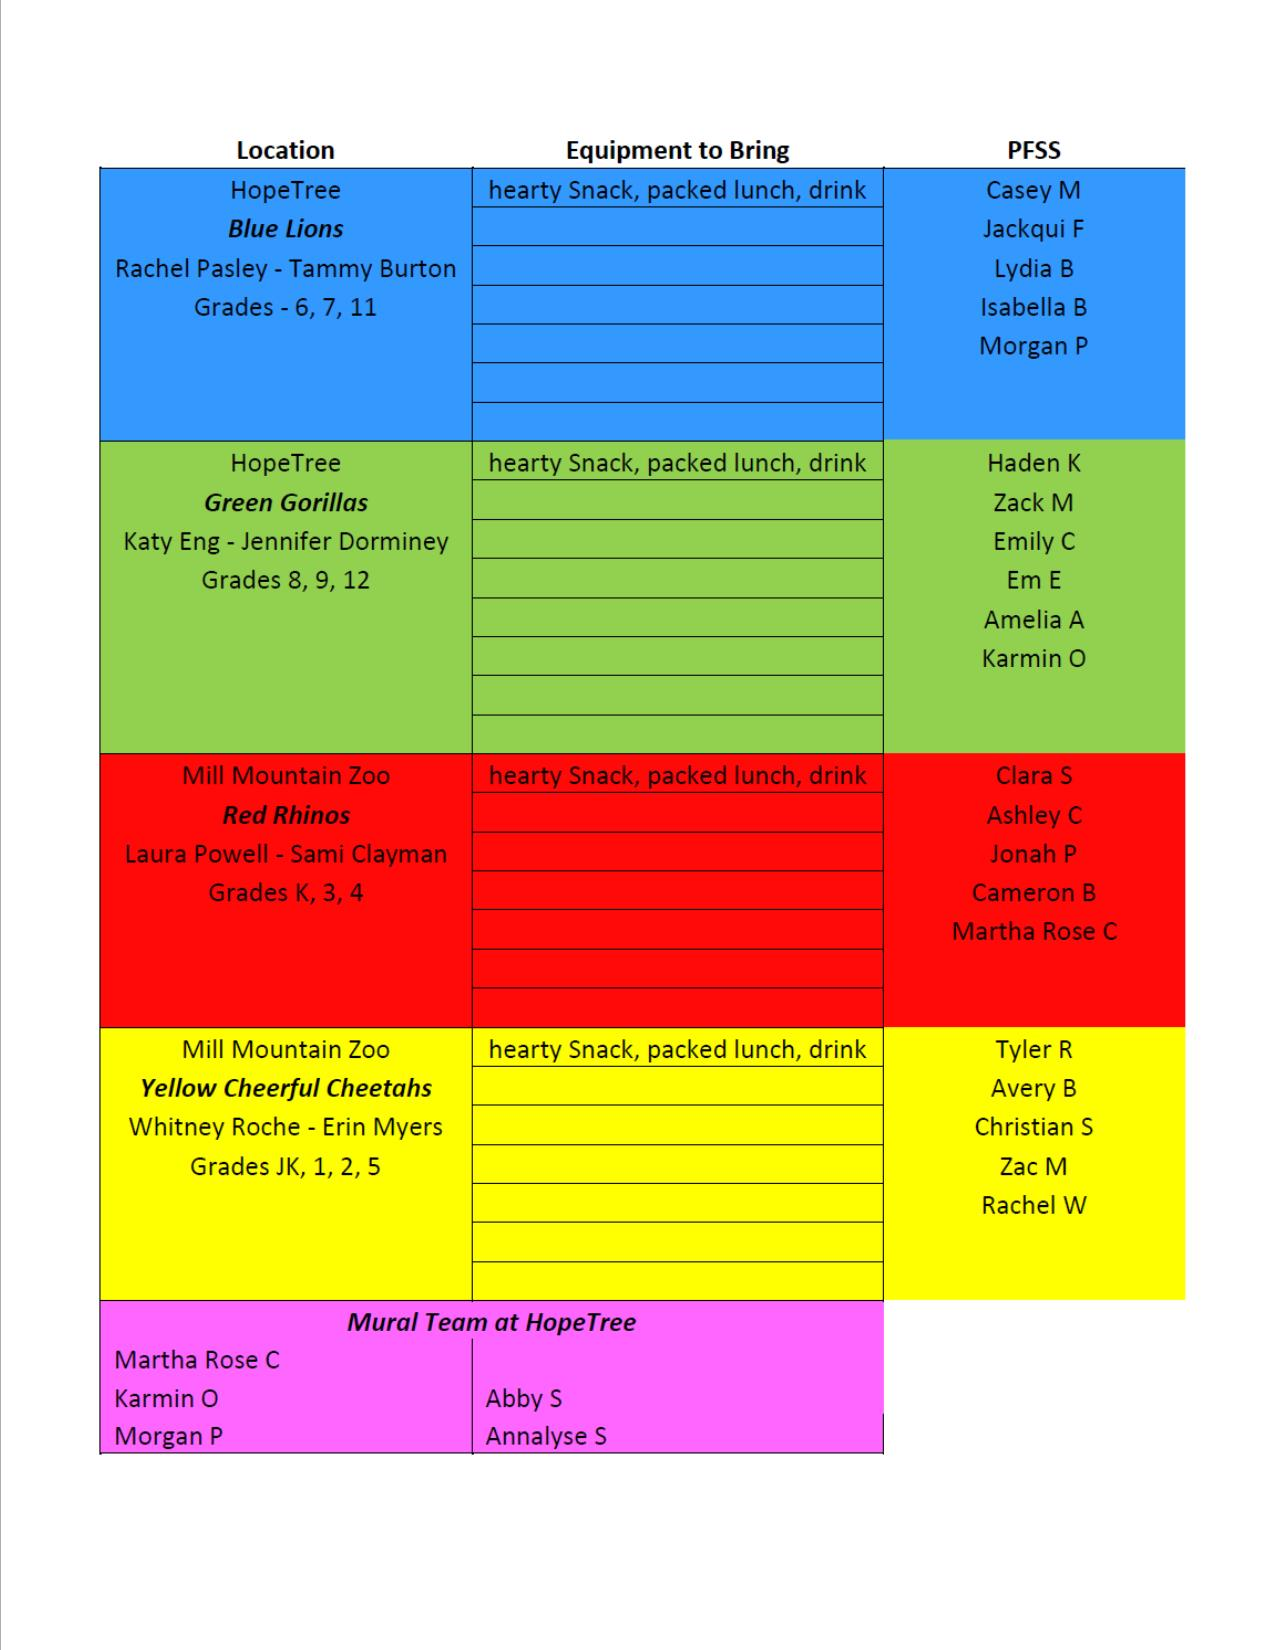 Project Faith Team Names, Supplies, Managers and PFSS(1)